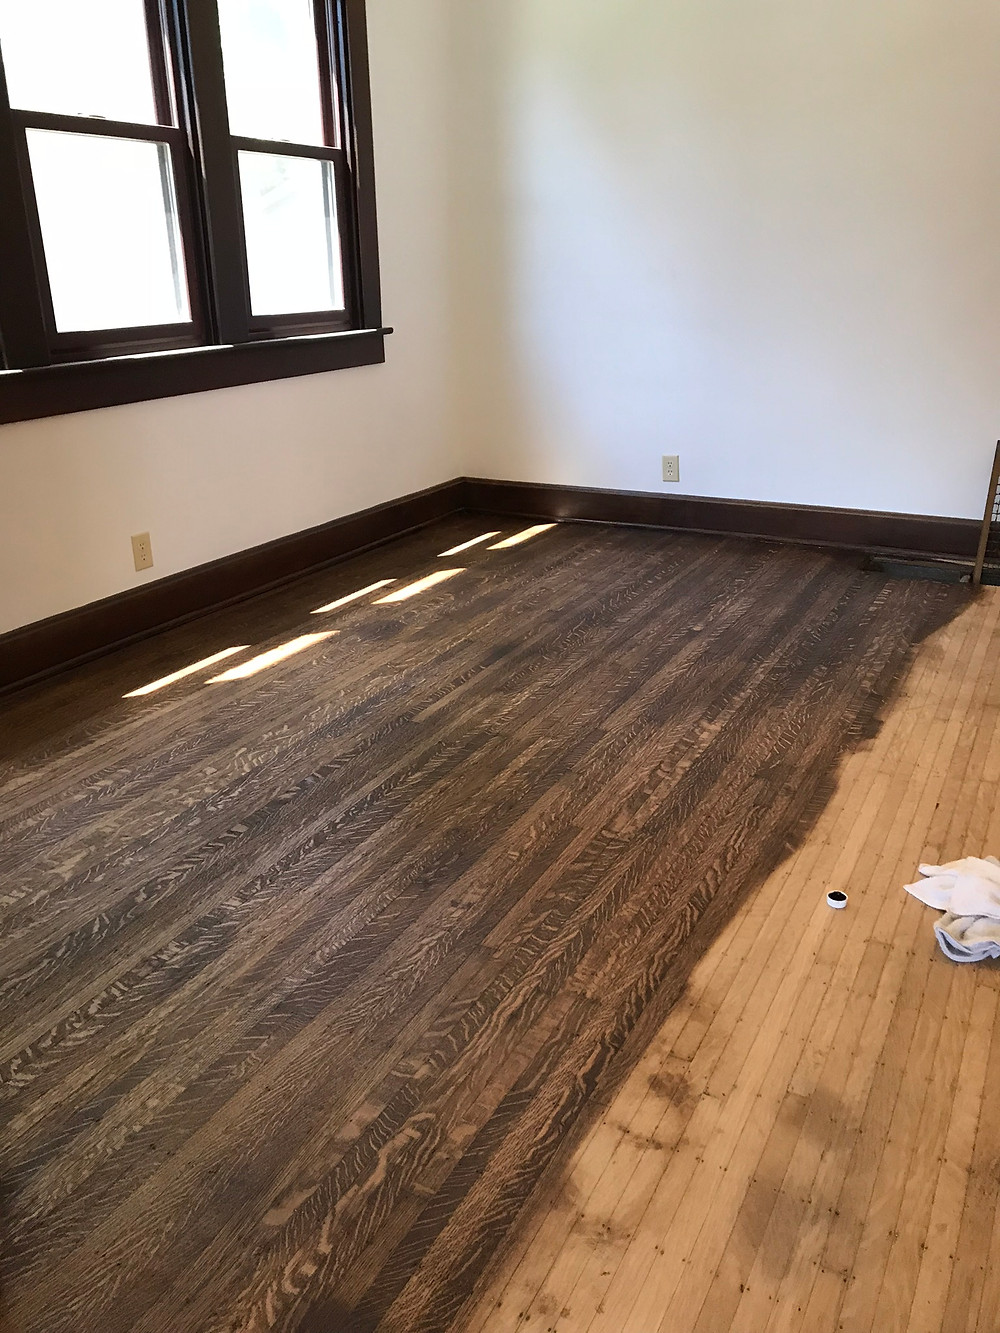 quarter sawn white oak top nail 5/16 flooring. How many times can it be sanded?